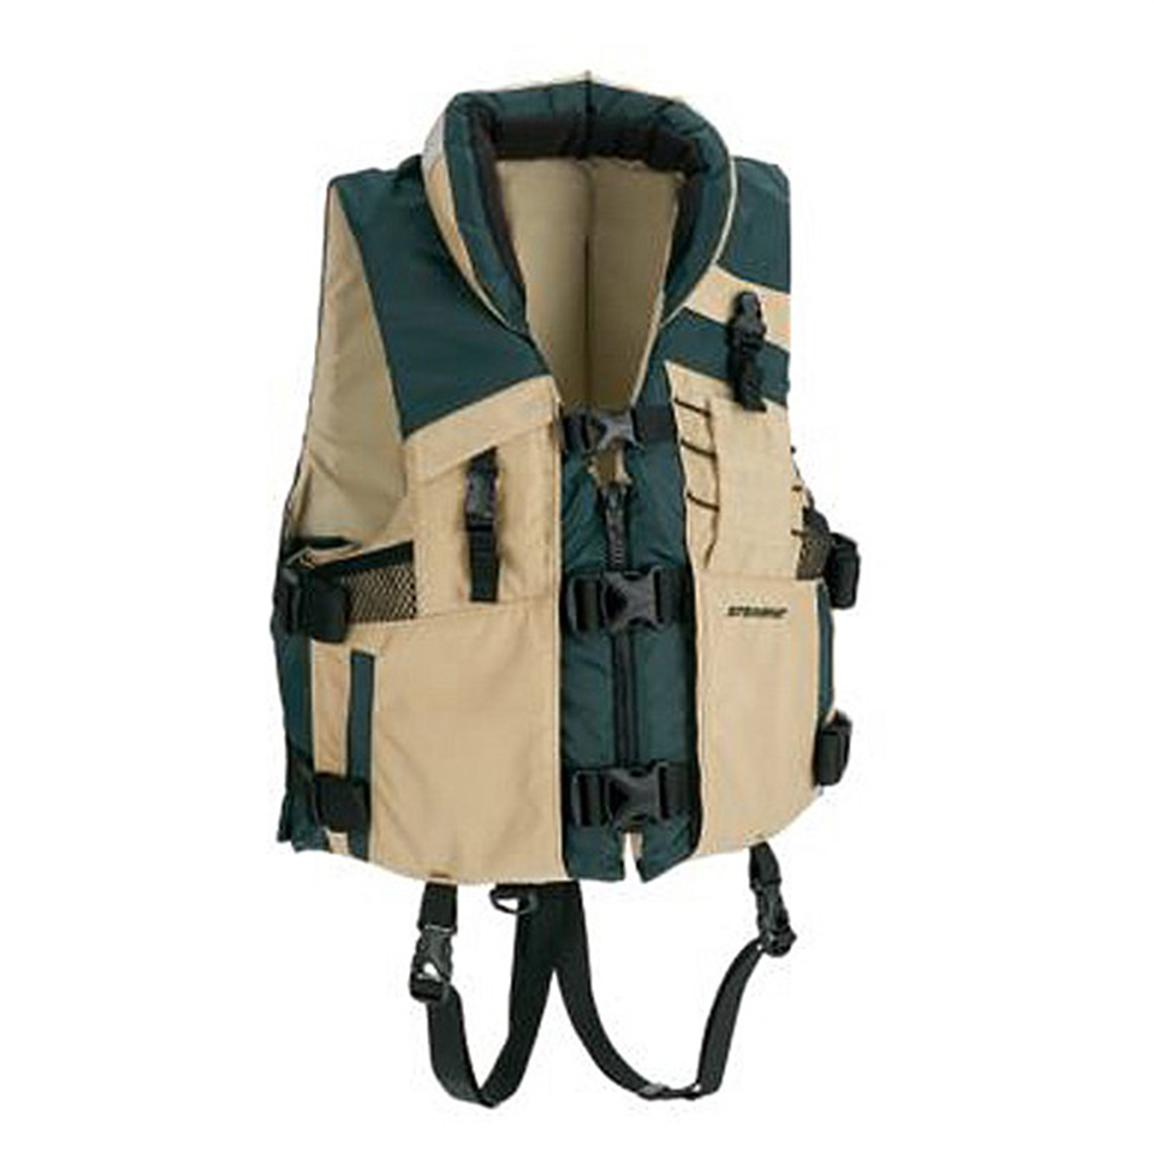 Stearns® Trophy Series™ Life Vest, Bayberry